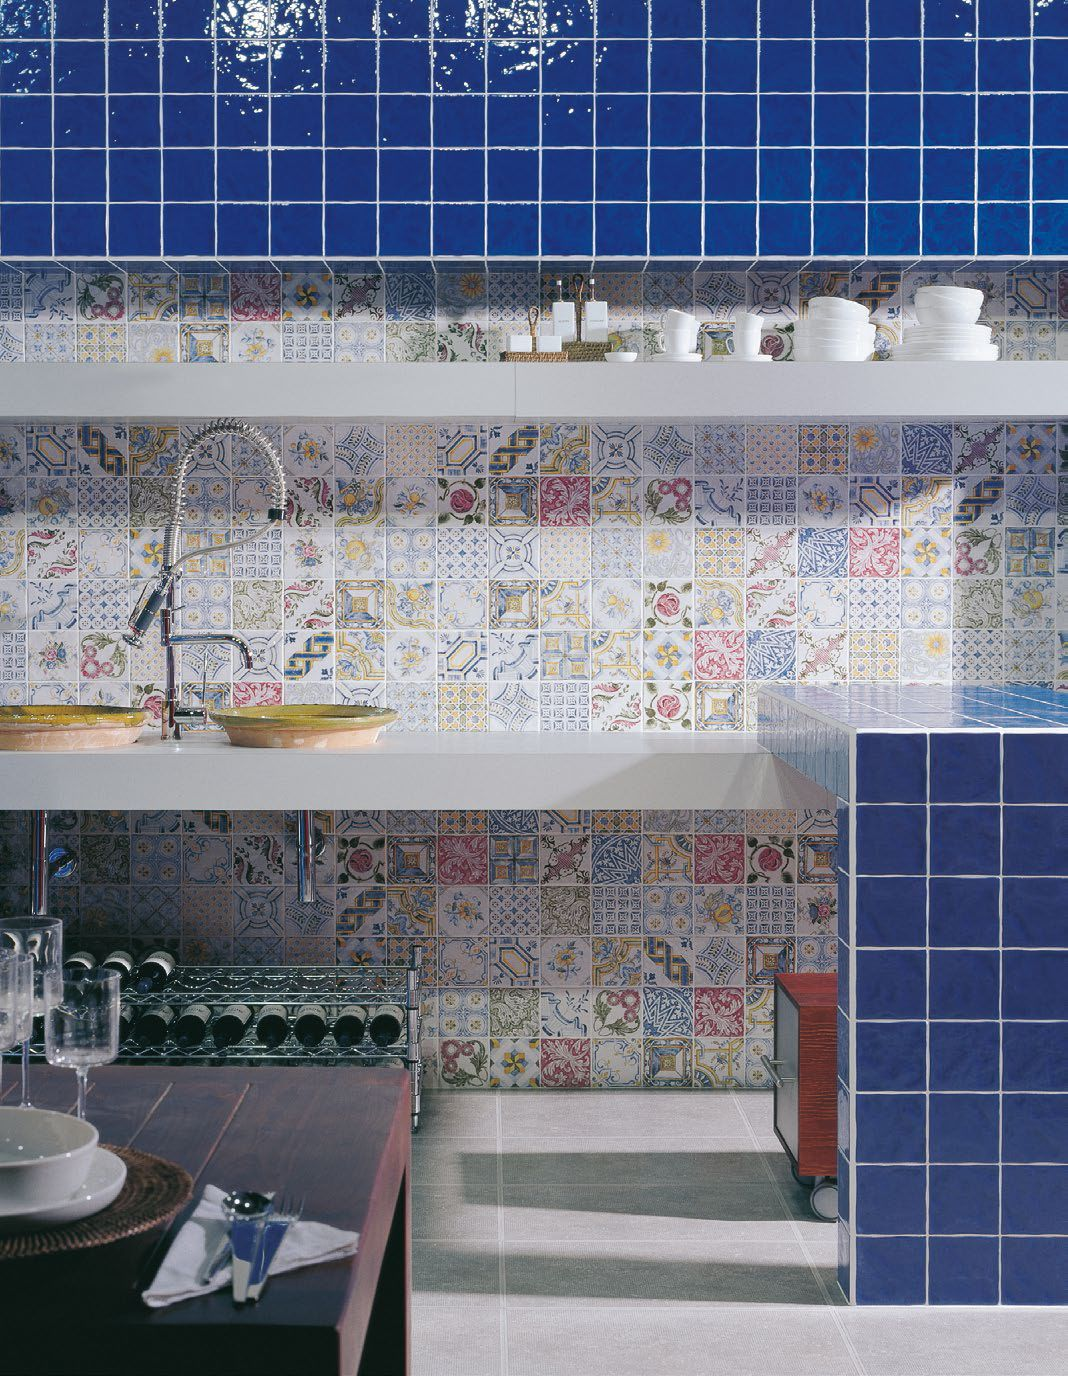 Top 15 Patchwork Tile Backsplash Designs for Kitchen | Pinterest